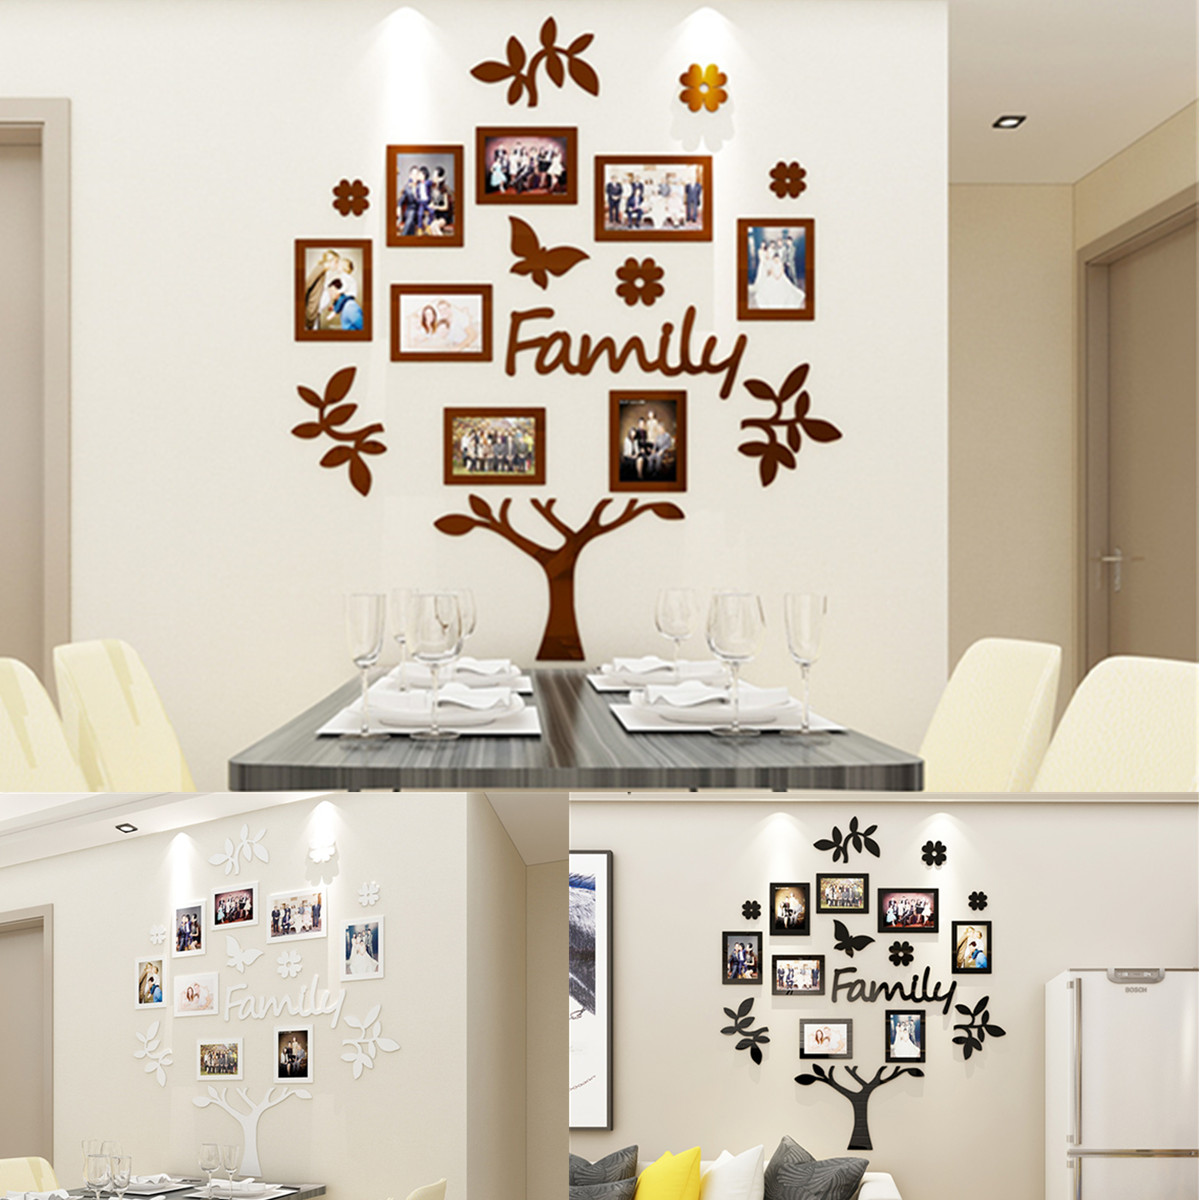 Details About Diy 3d Paper Family Wedding Tree Photo Pictures Collage Frame Wall Art Decor